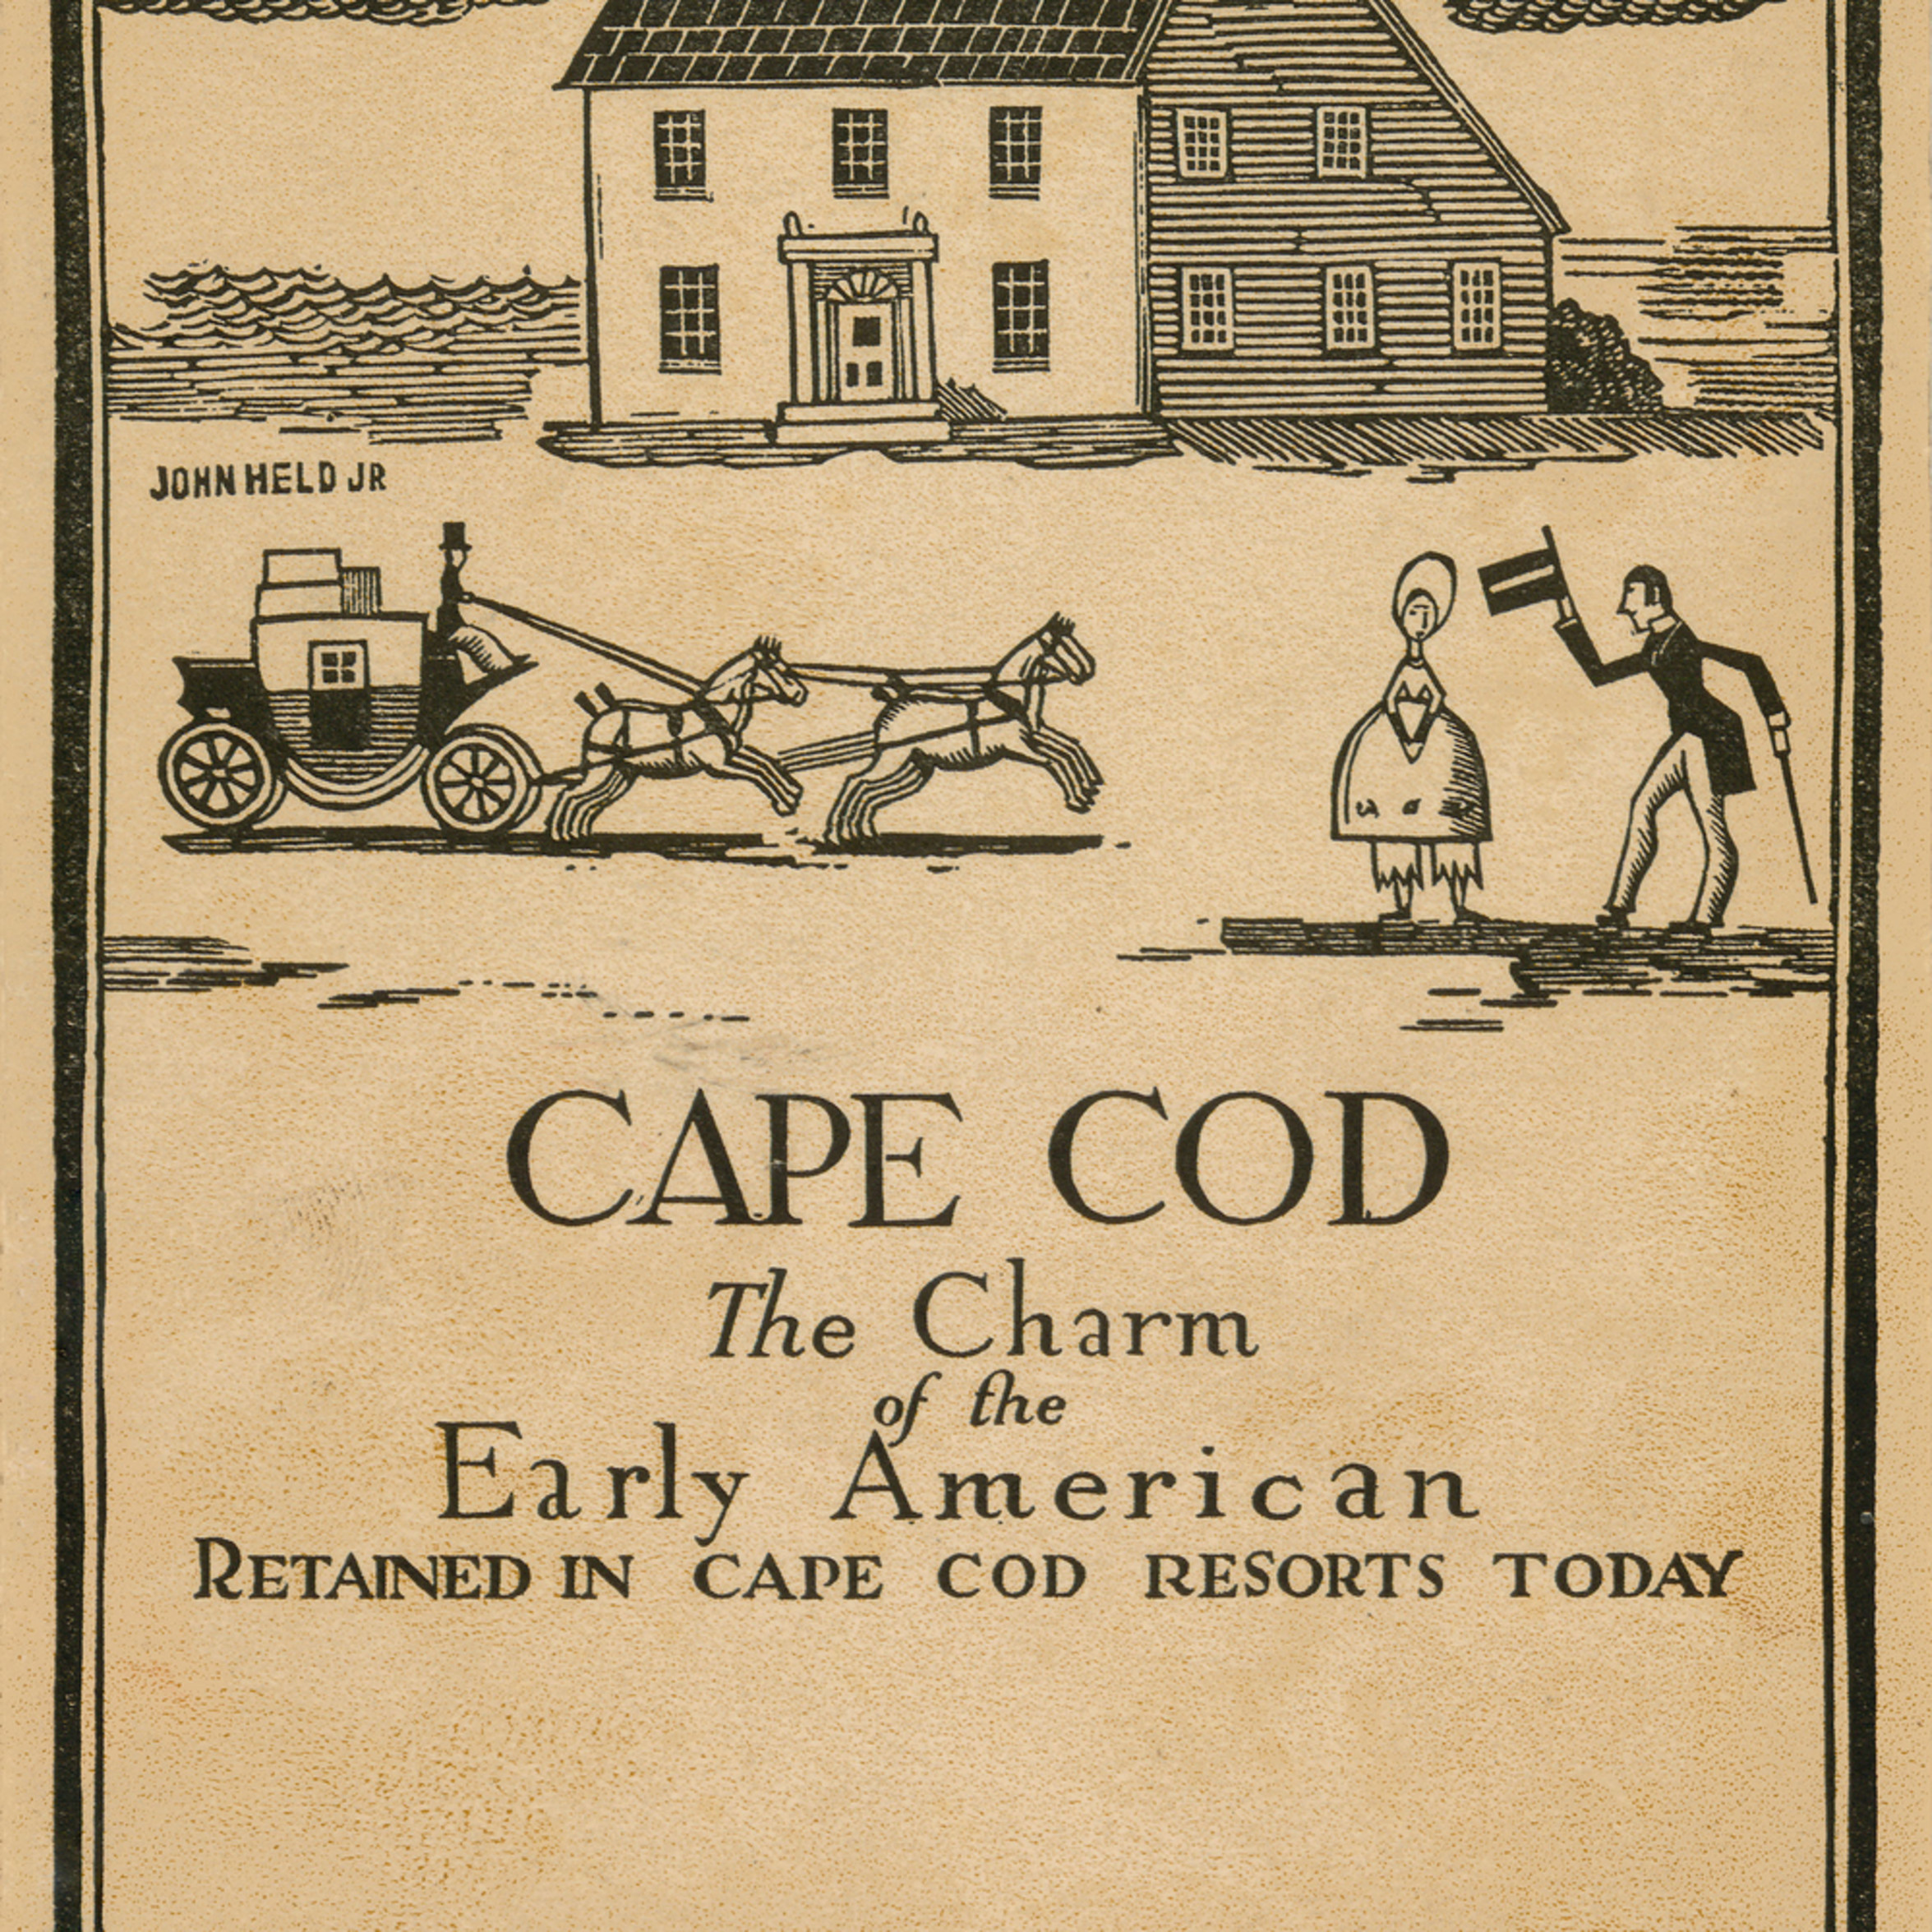 004 p cape cod the cham1927 15.5x23.5 28 io8snm